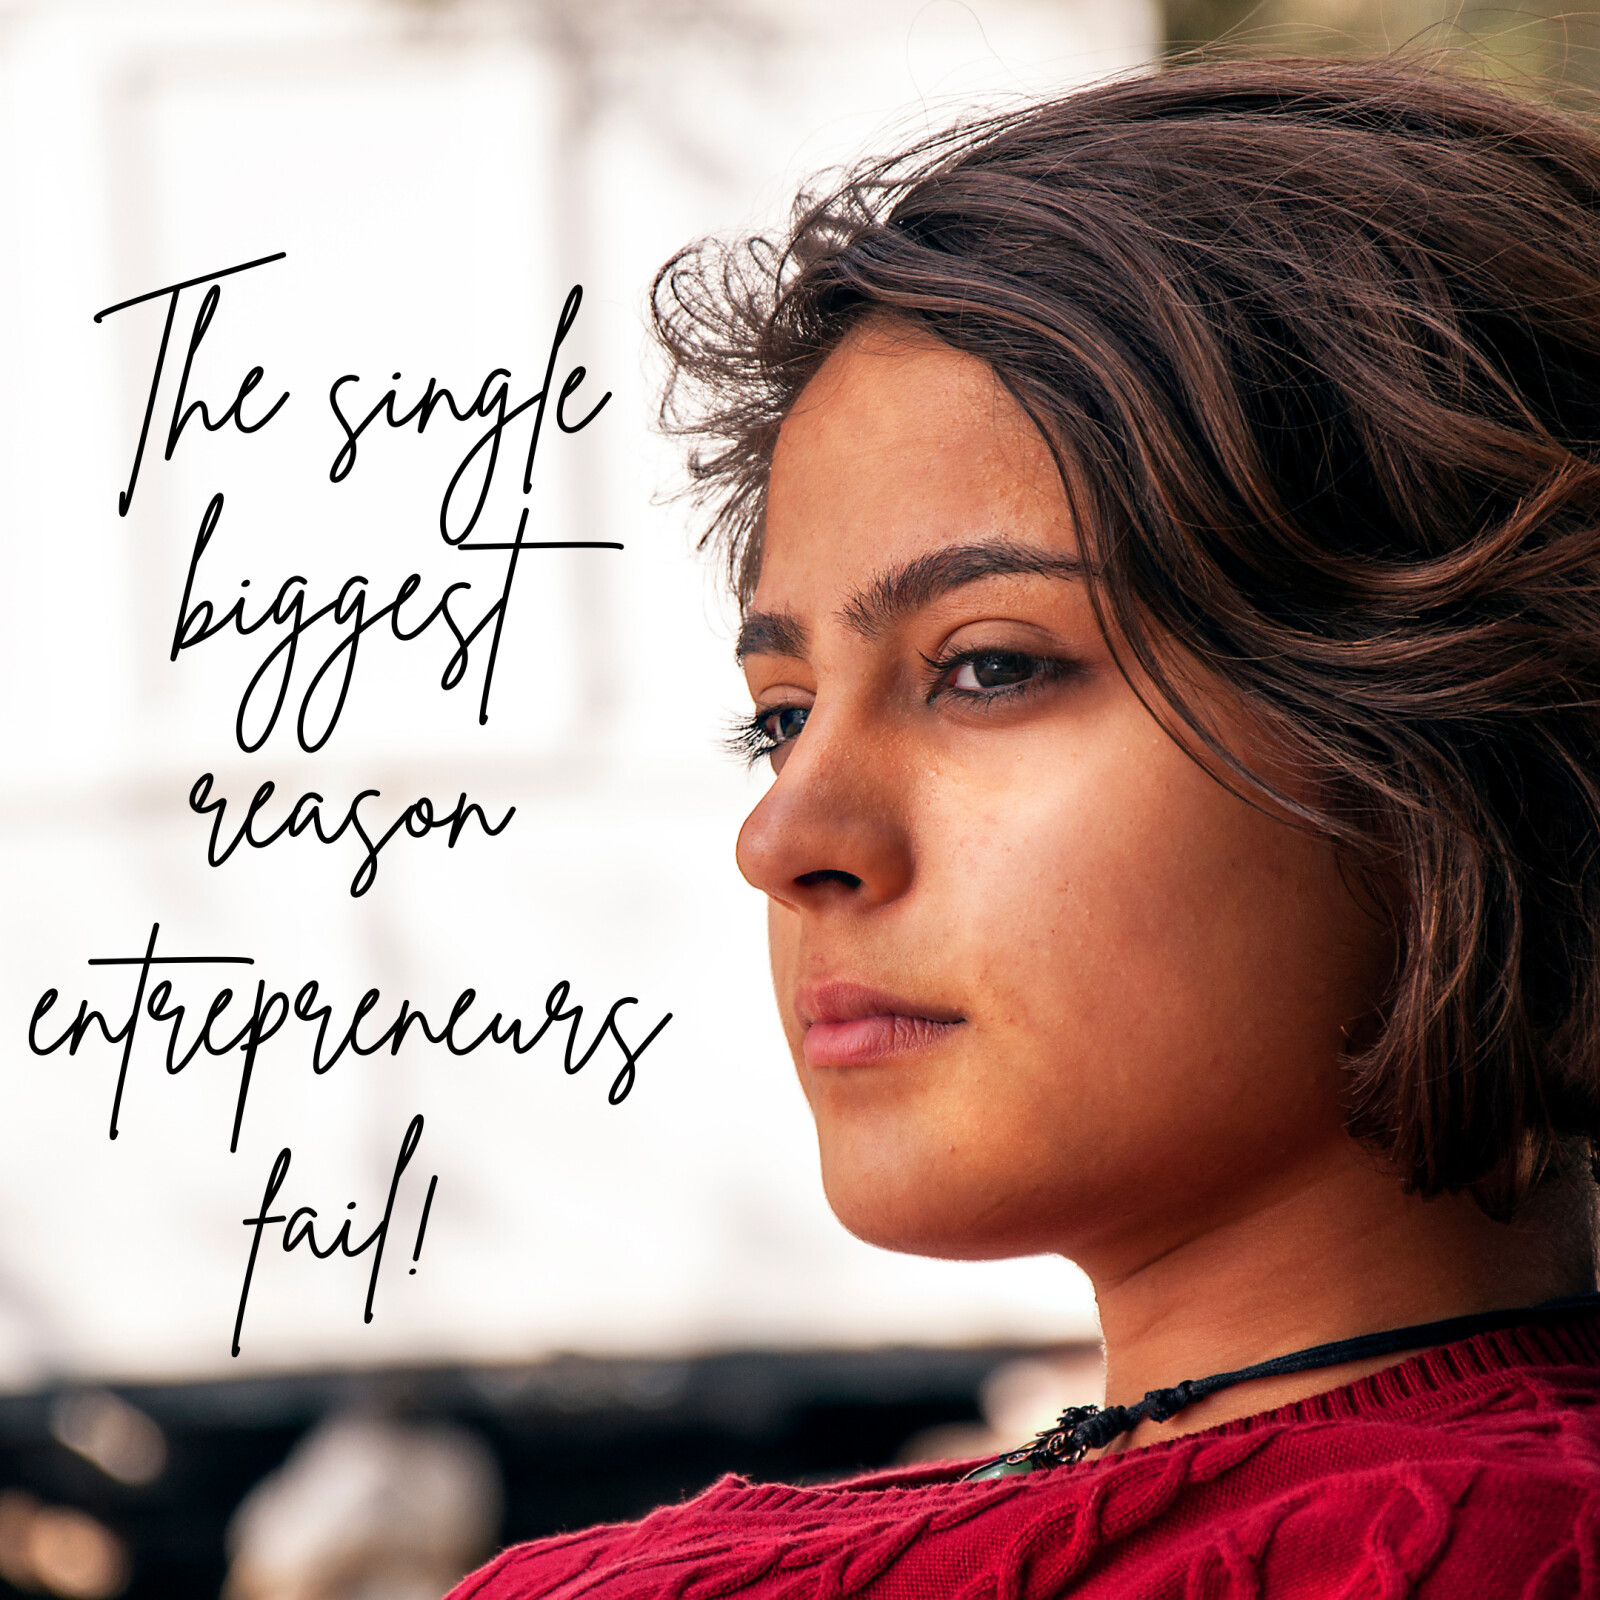 The single biggest reason entrepreneurs fail